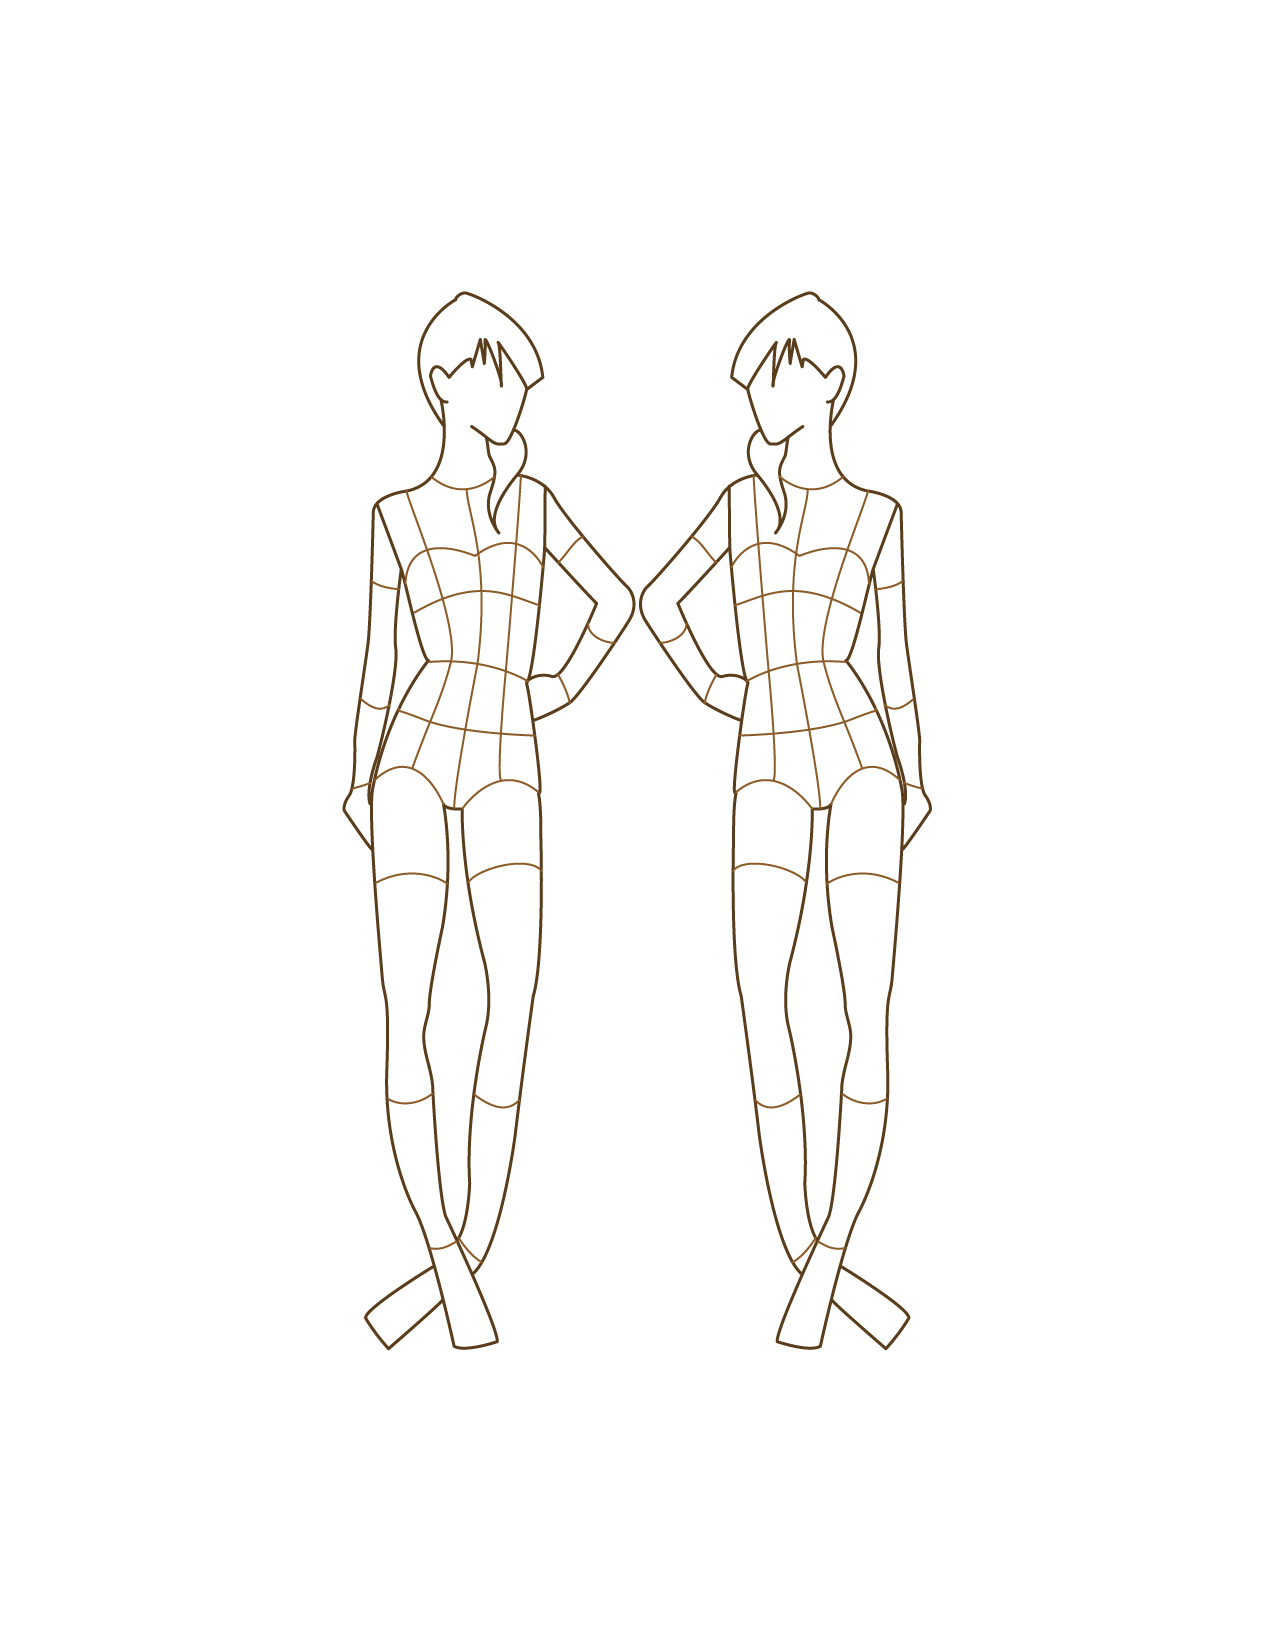 Children fashion figure templates 21